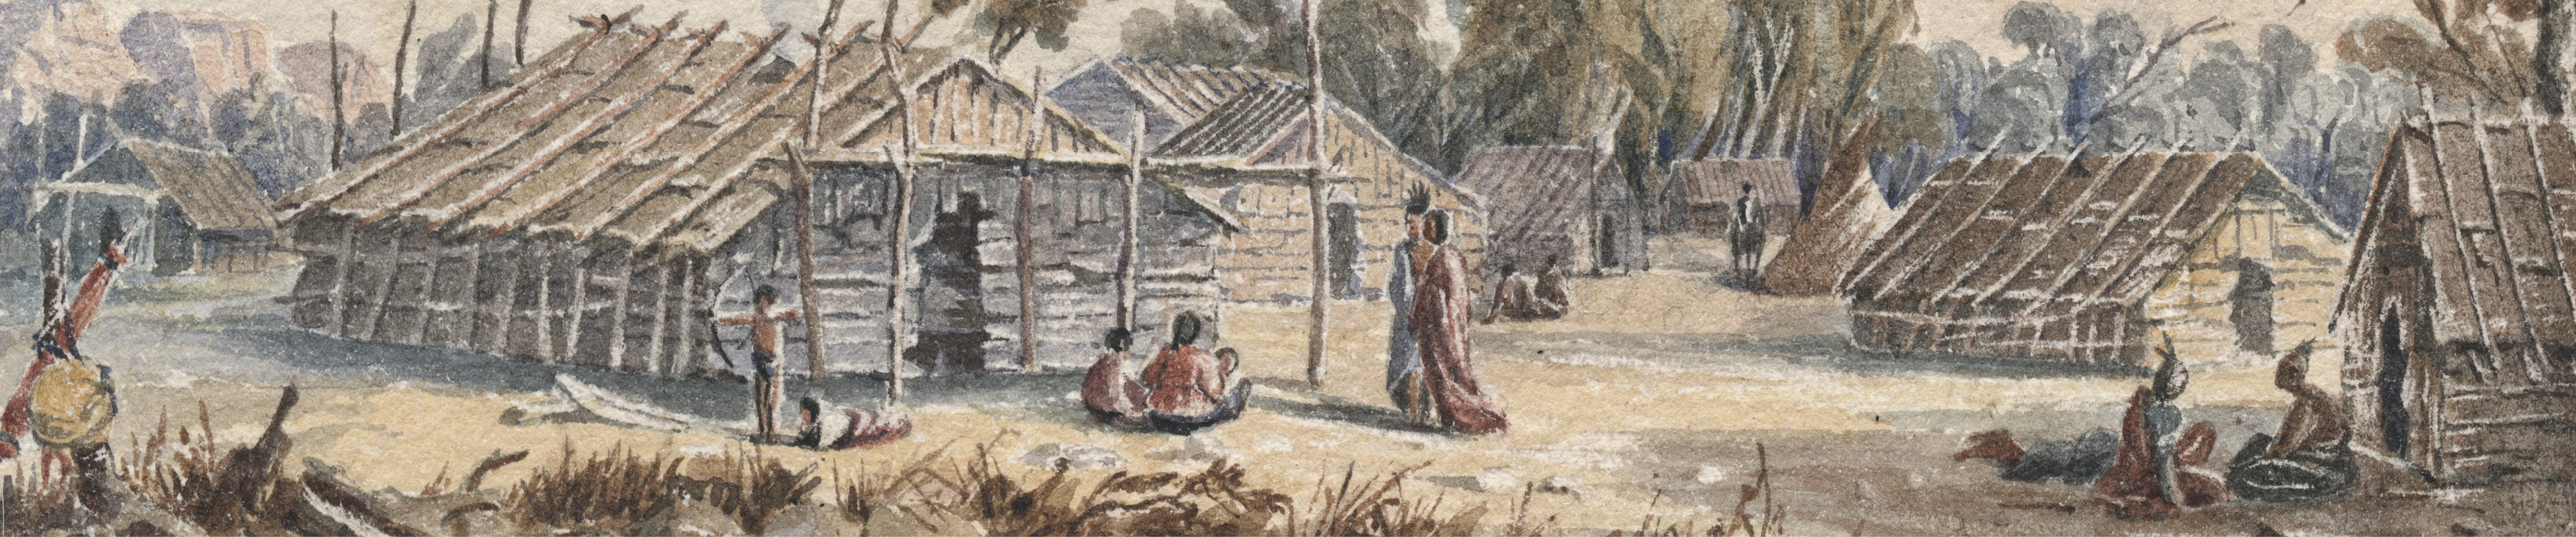 Dakota summer lodge, 1846–1848. Watercolor painting by Seth Eastman.